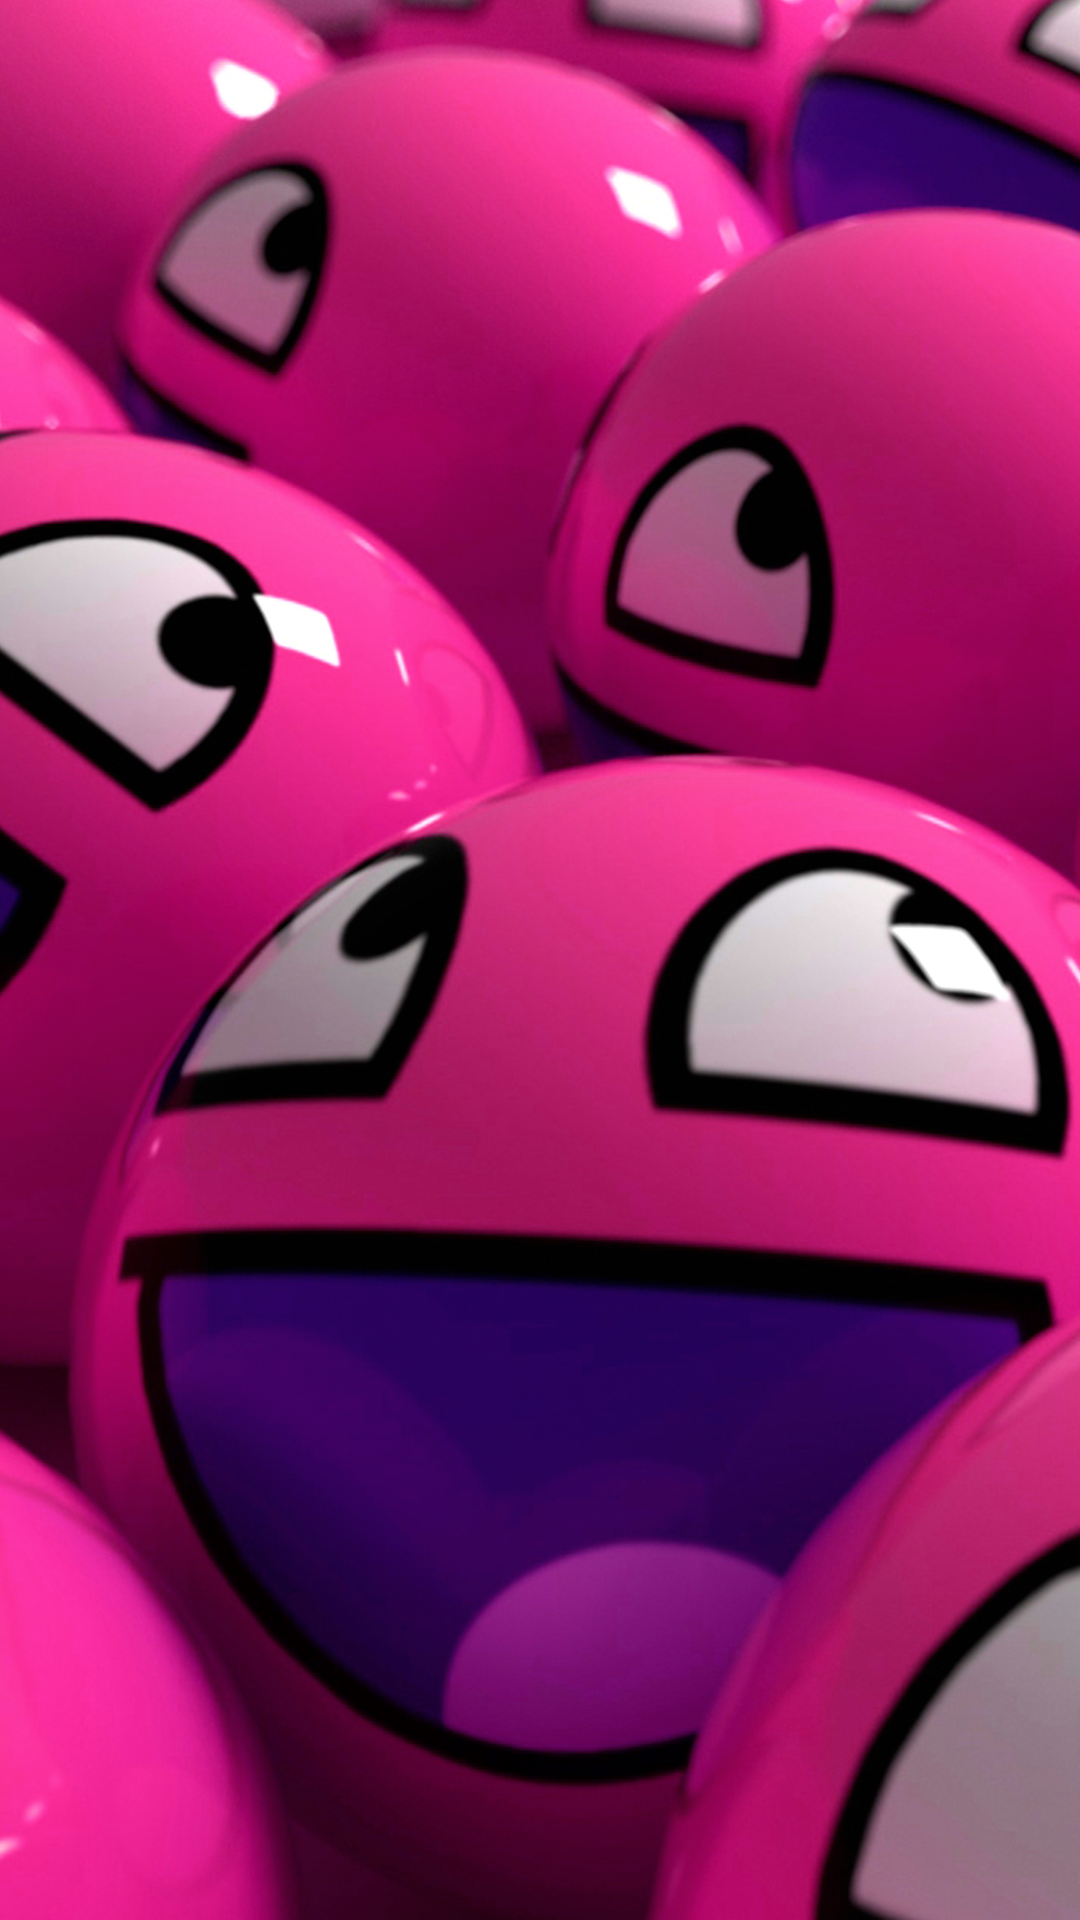 Download Our HD Happy Pink Balls Wallpaper For Android